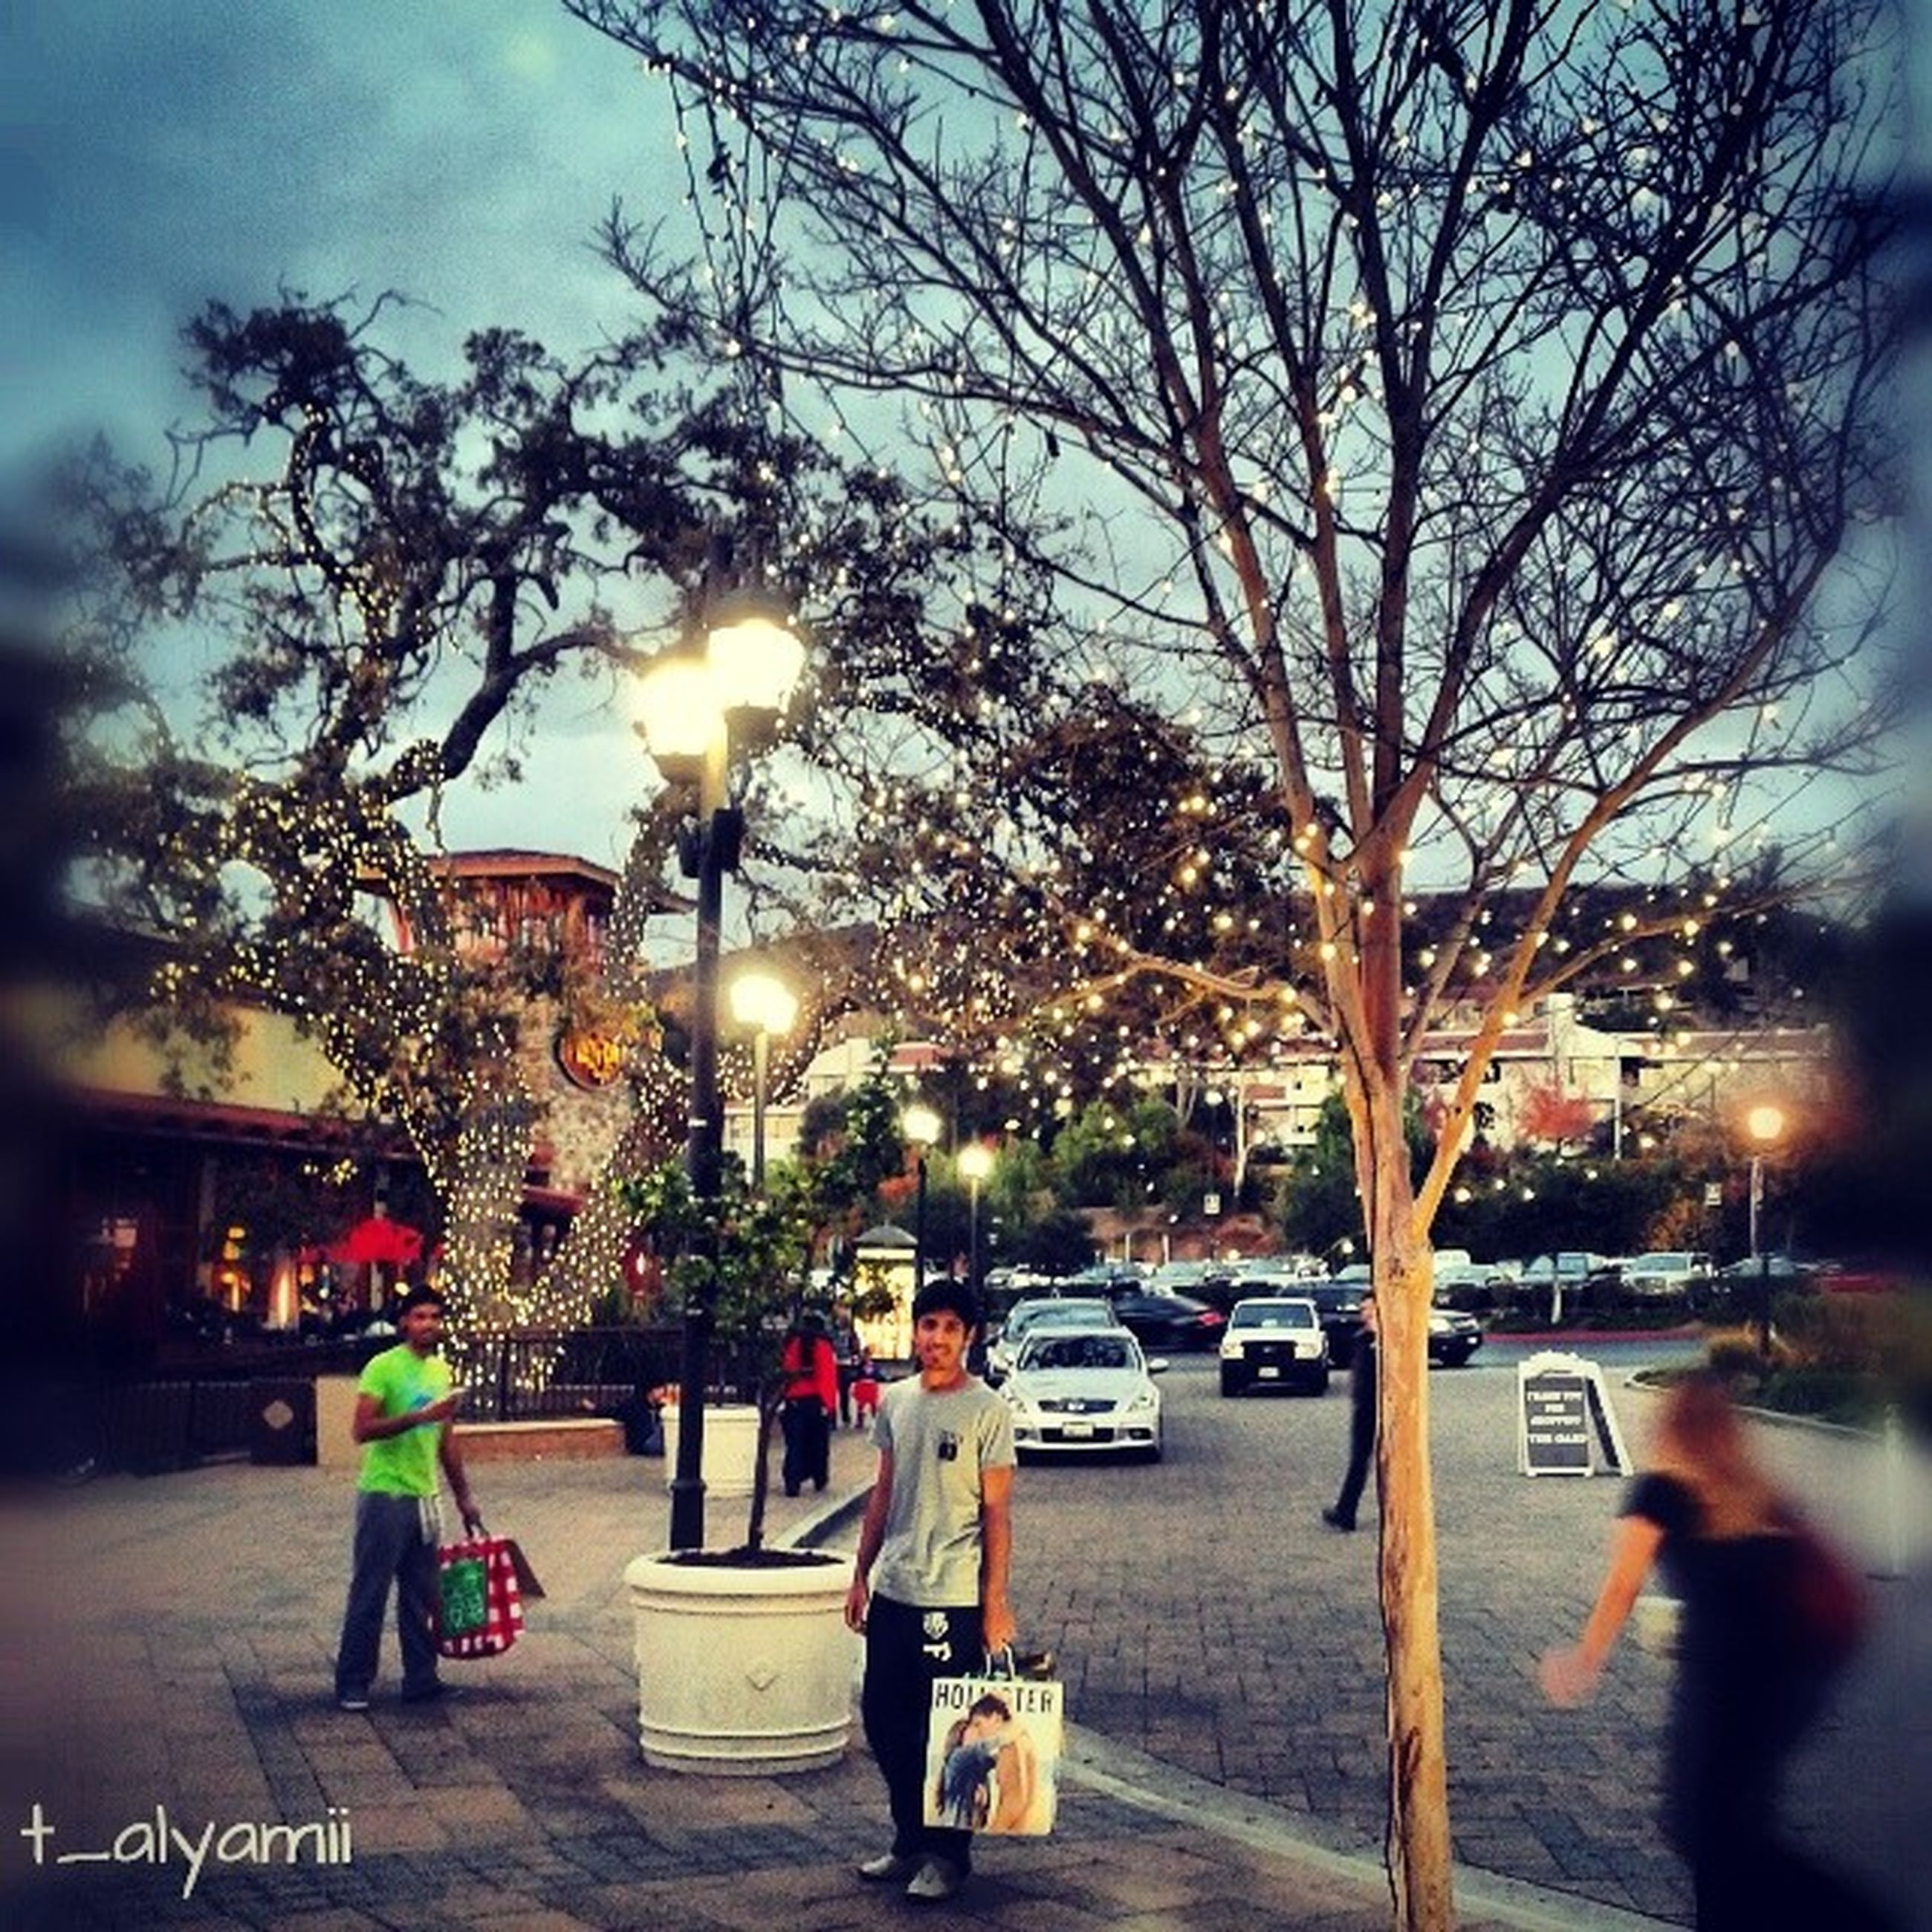 tree, illuminated, street light, street, men, city, lifestyles, lighting equipment, sky, city life, person, bare tree, leisure activity, branch, transportation, walking, night, building exterior, incidental people